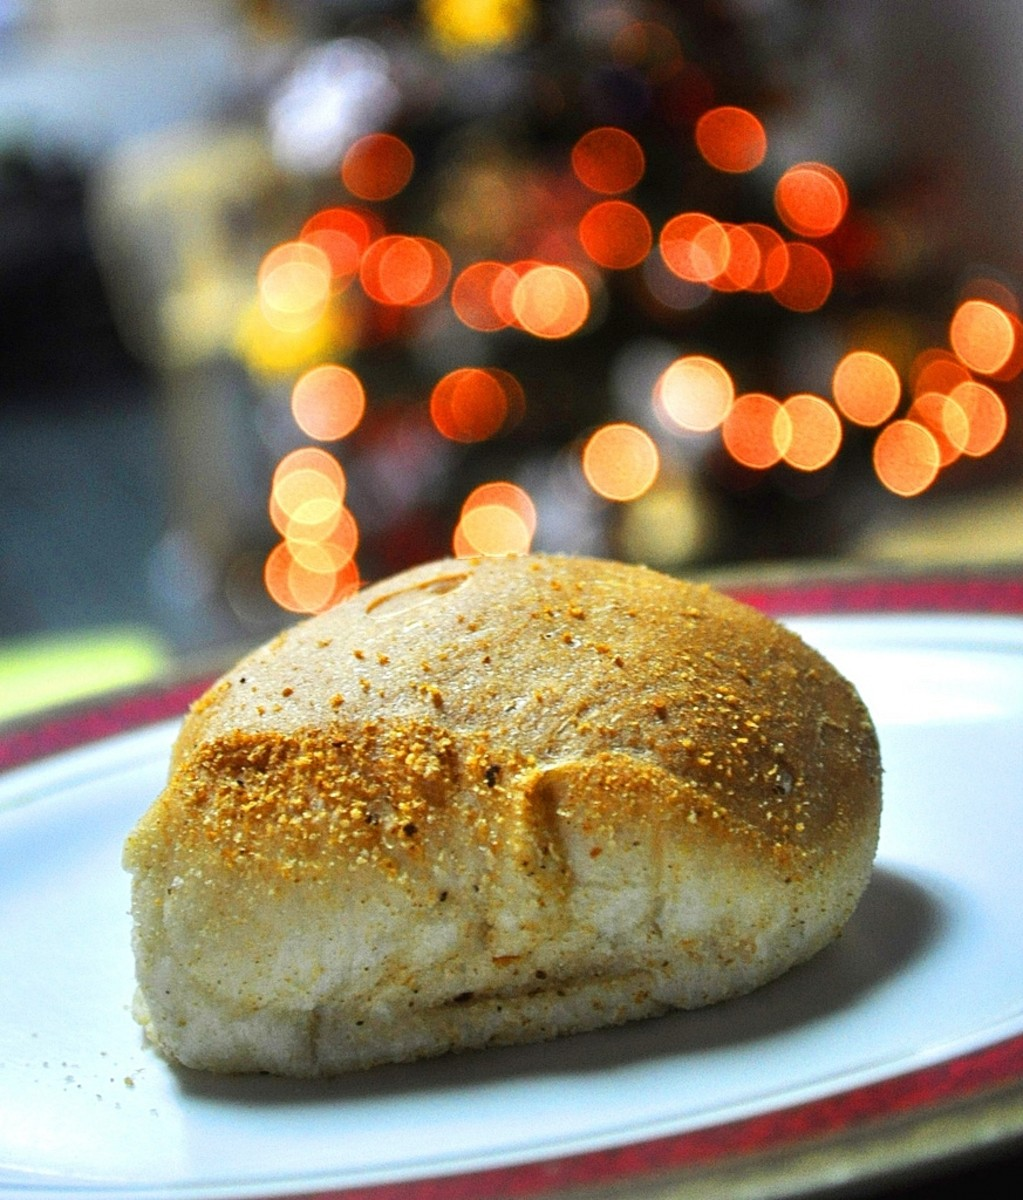 How to Bake Pandesal or Pan de Sal – the Everyday Filipino Bread